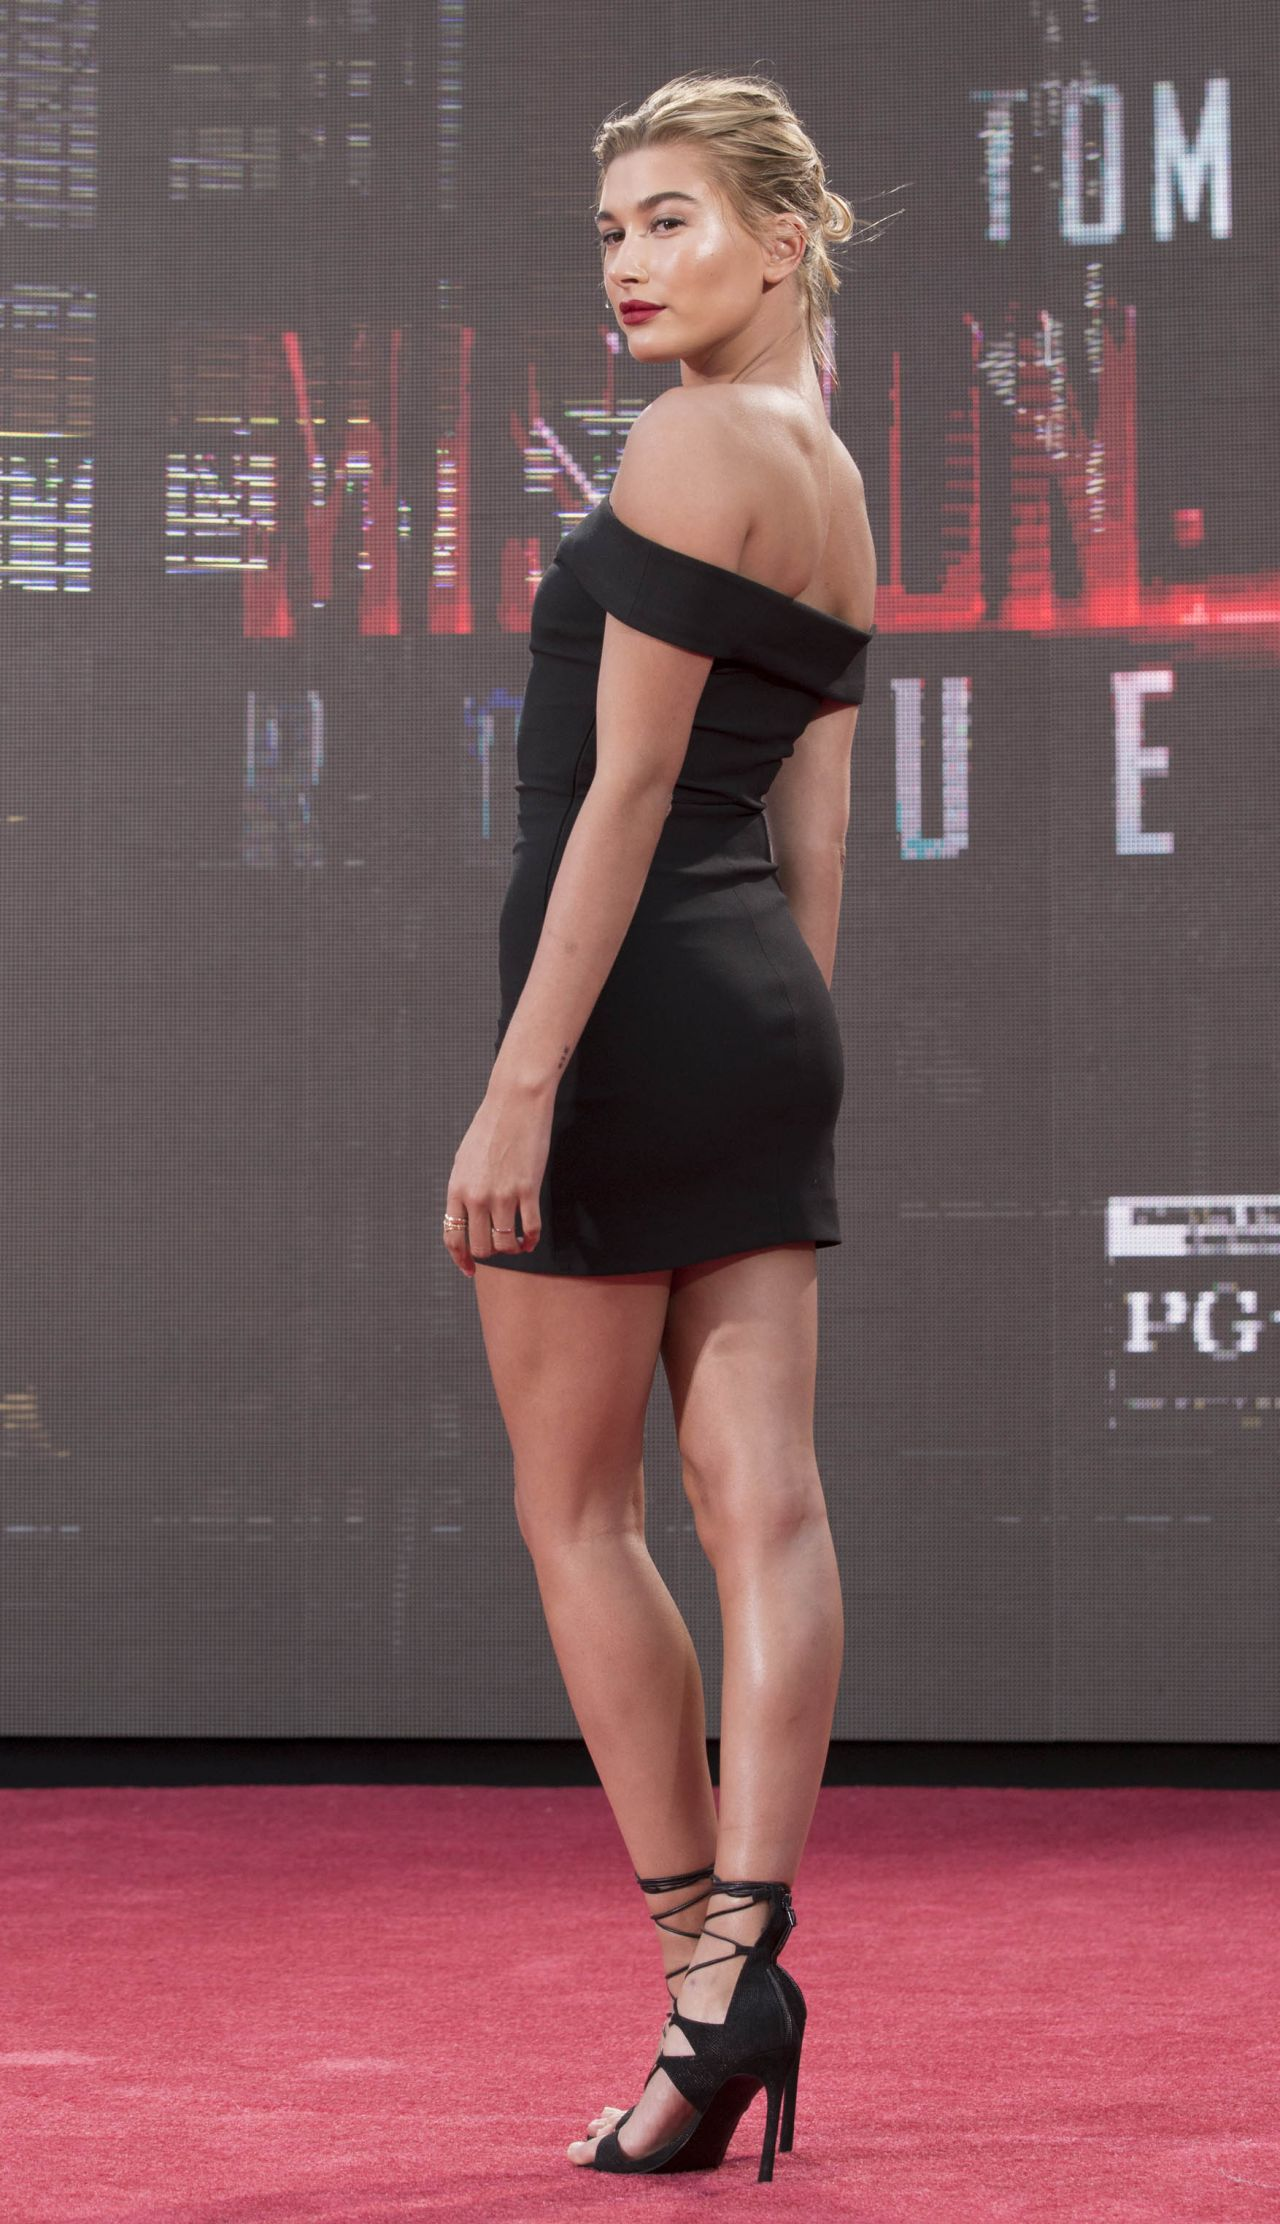 Hailey Baldwin - Mission Impossible: Rogue Nation Premiere